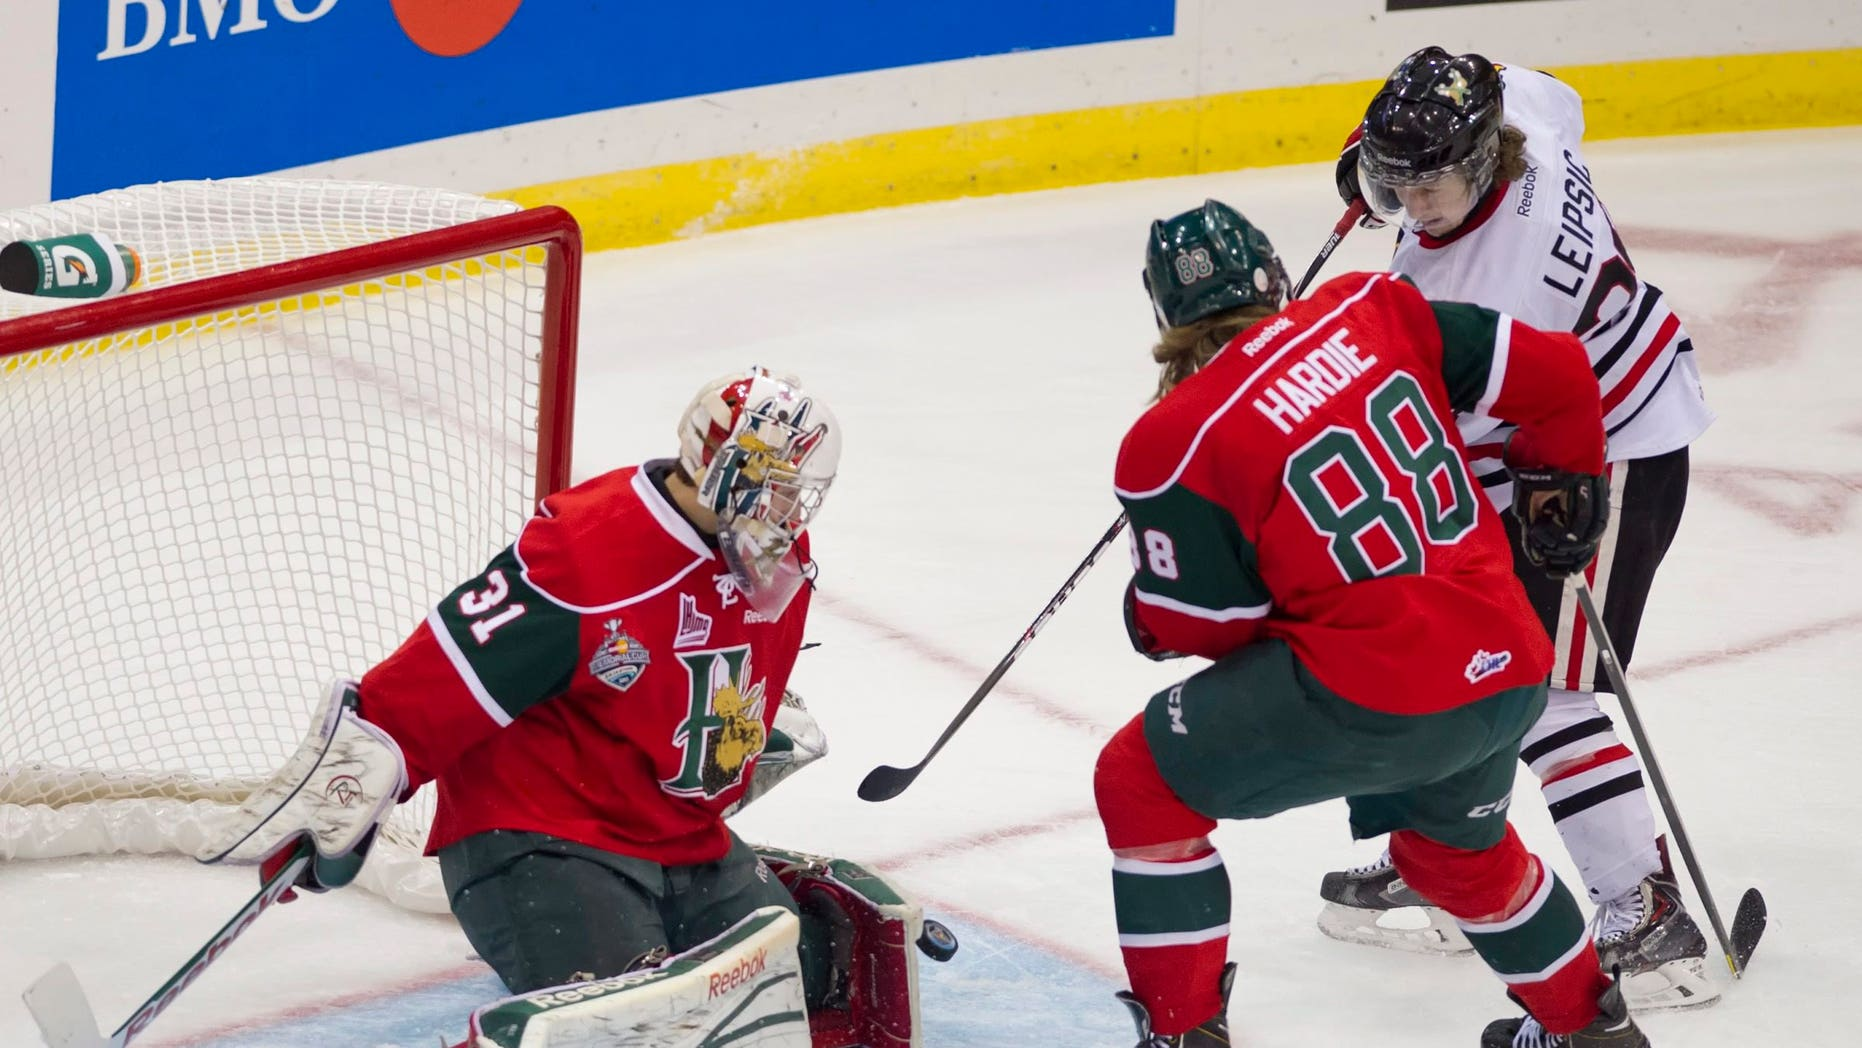 Halifax Mooseheads goaltender Zachary Fucale turns away a shot with the help of defenseman Austyn Hardie as Portland Winterhawks center Brendan Leipsic presses sduring the first period of a junior hockey Memorial Cup game Saturday, May 18, 2013, in Saskatoon, Saskatchewan. (AP Photo/The Canadian Press, Liam Richards)